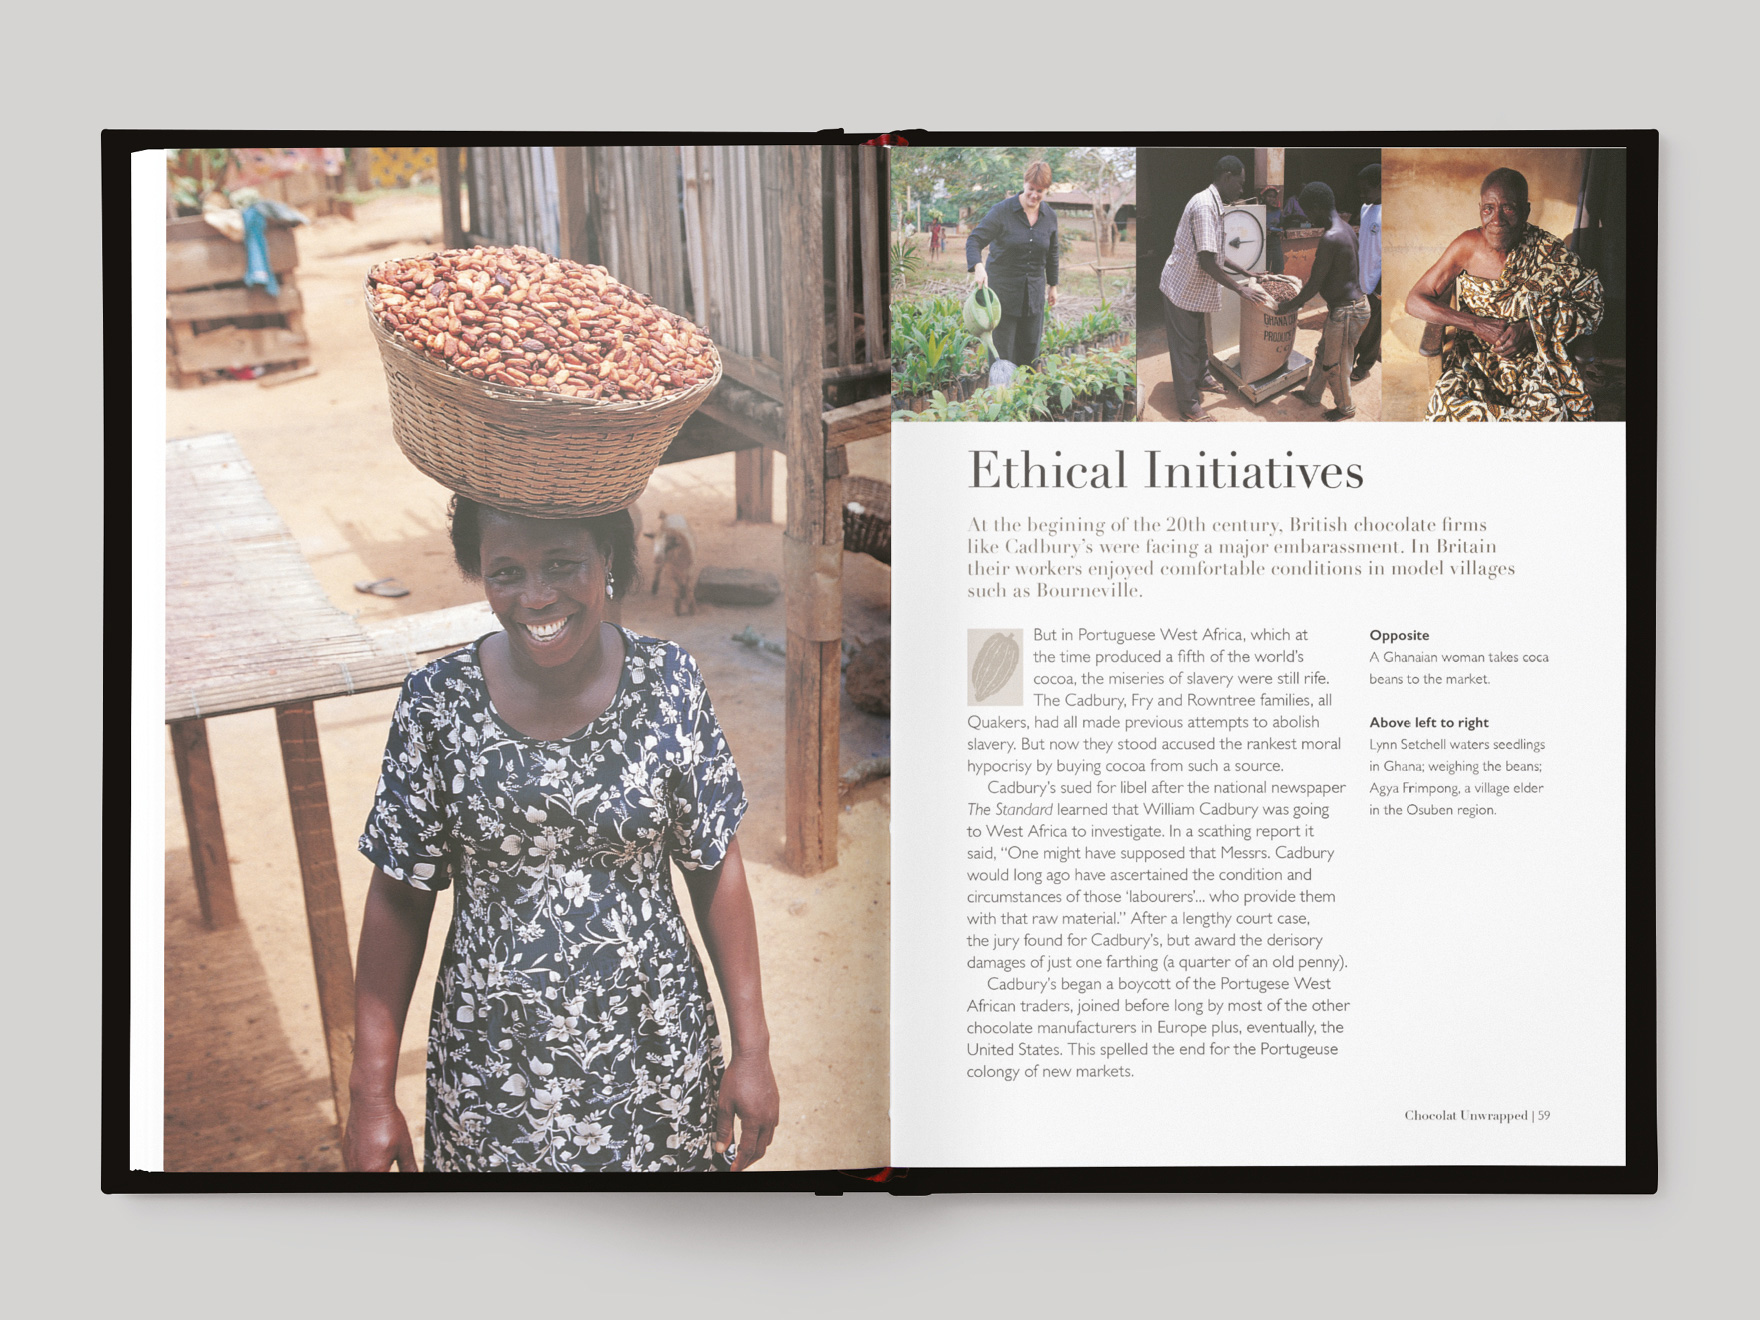 Inside book pages from Chocolate Unwrapped about ethical initiatives